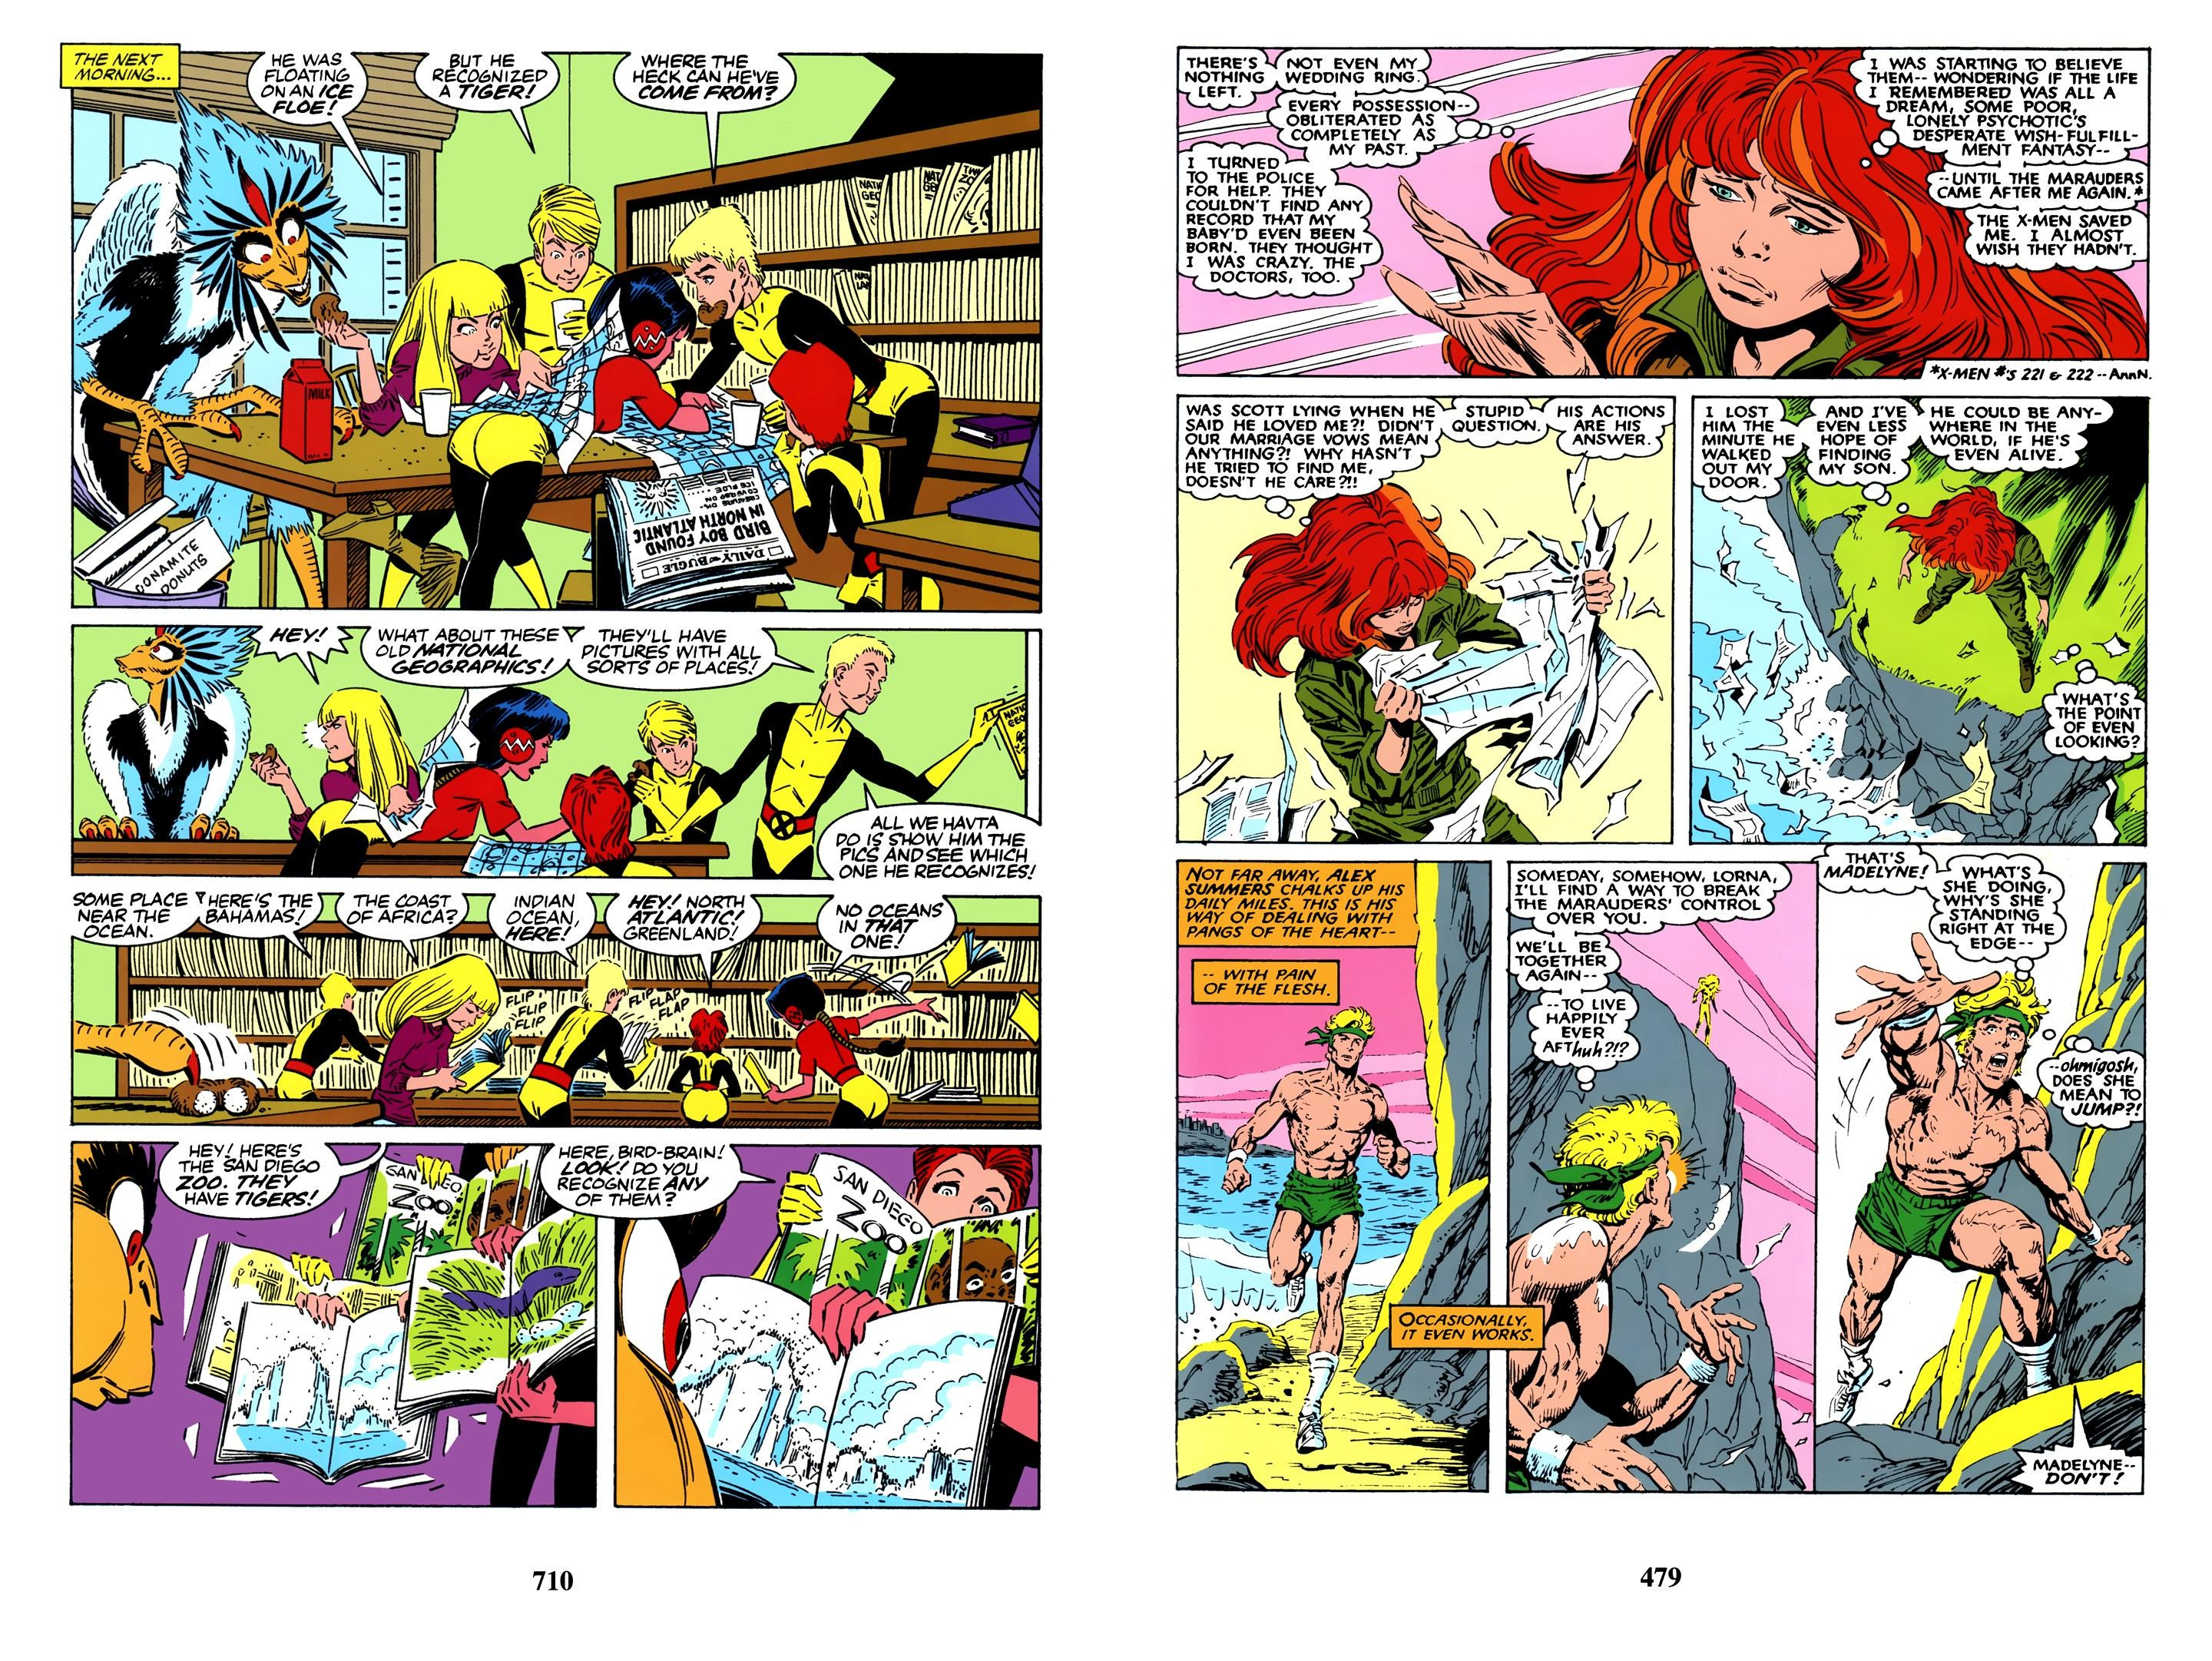 X-Men The Fall of the Mutants Omnibus review